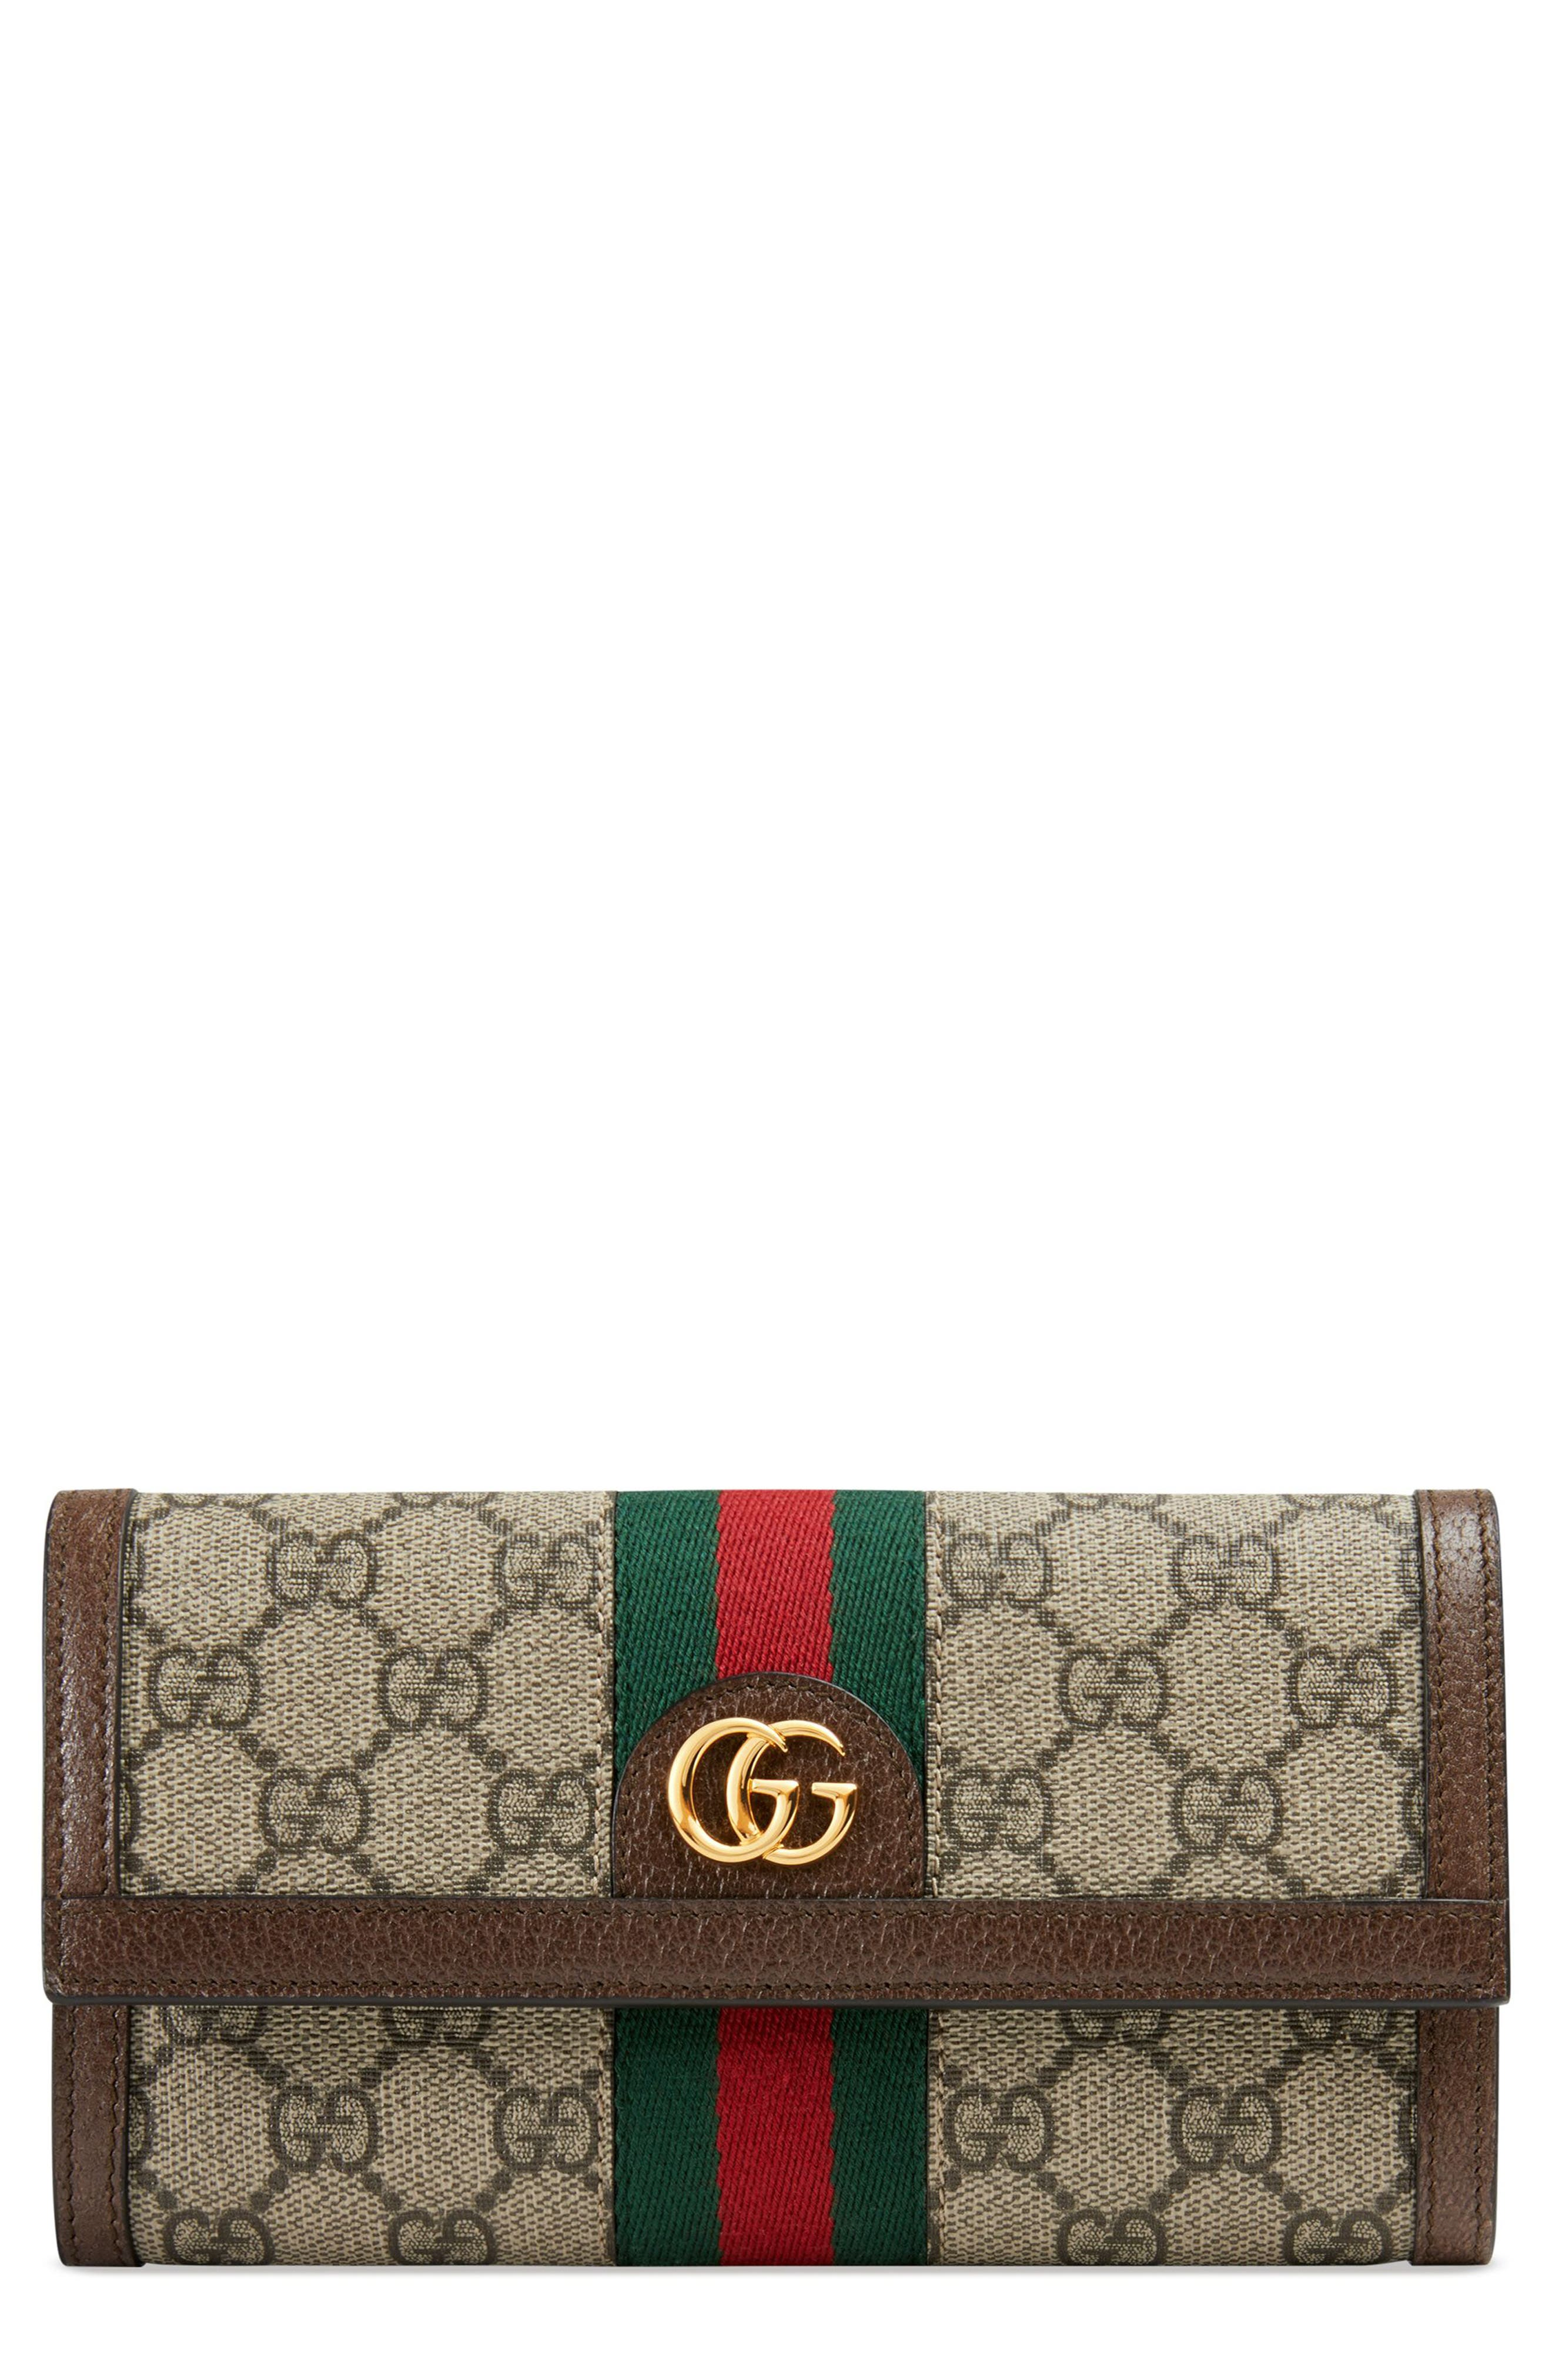 GUCCI, Ophidia GG Supreme Continental Wallet, Main thumbnail 1, color, BEIGE EBONY/ ACERO/ VERT RED